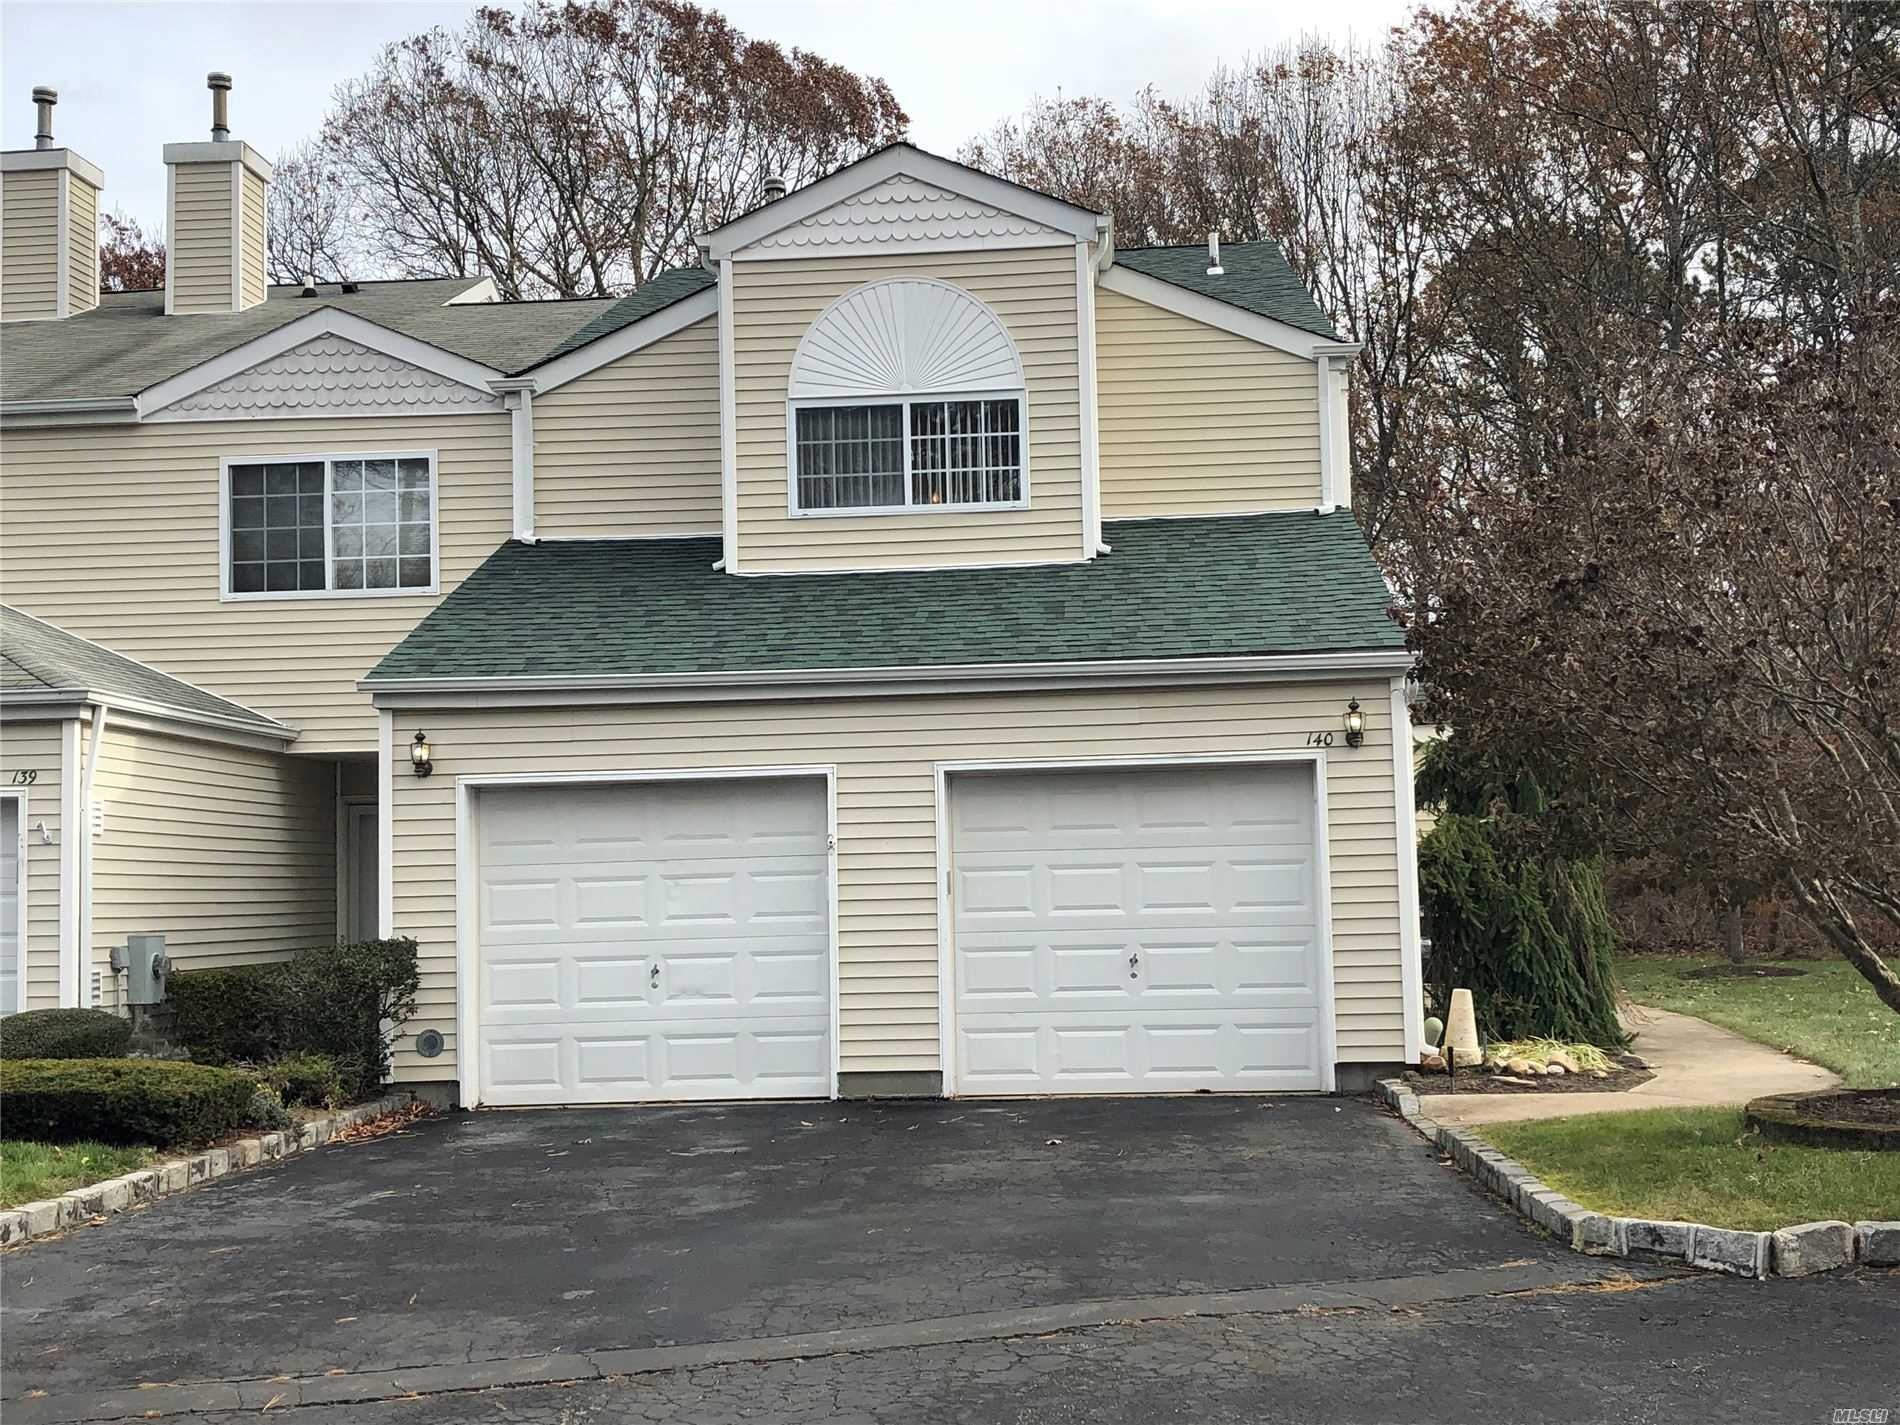 Property for sale at 140 Farm House Court, Manorville NY 11949, Manorville,  New York 11949